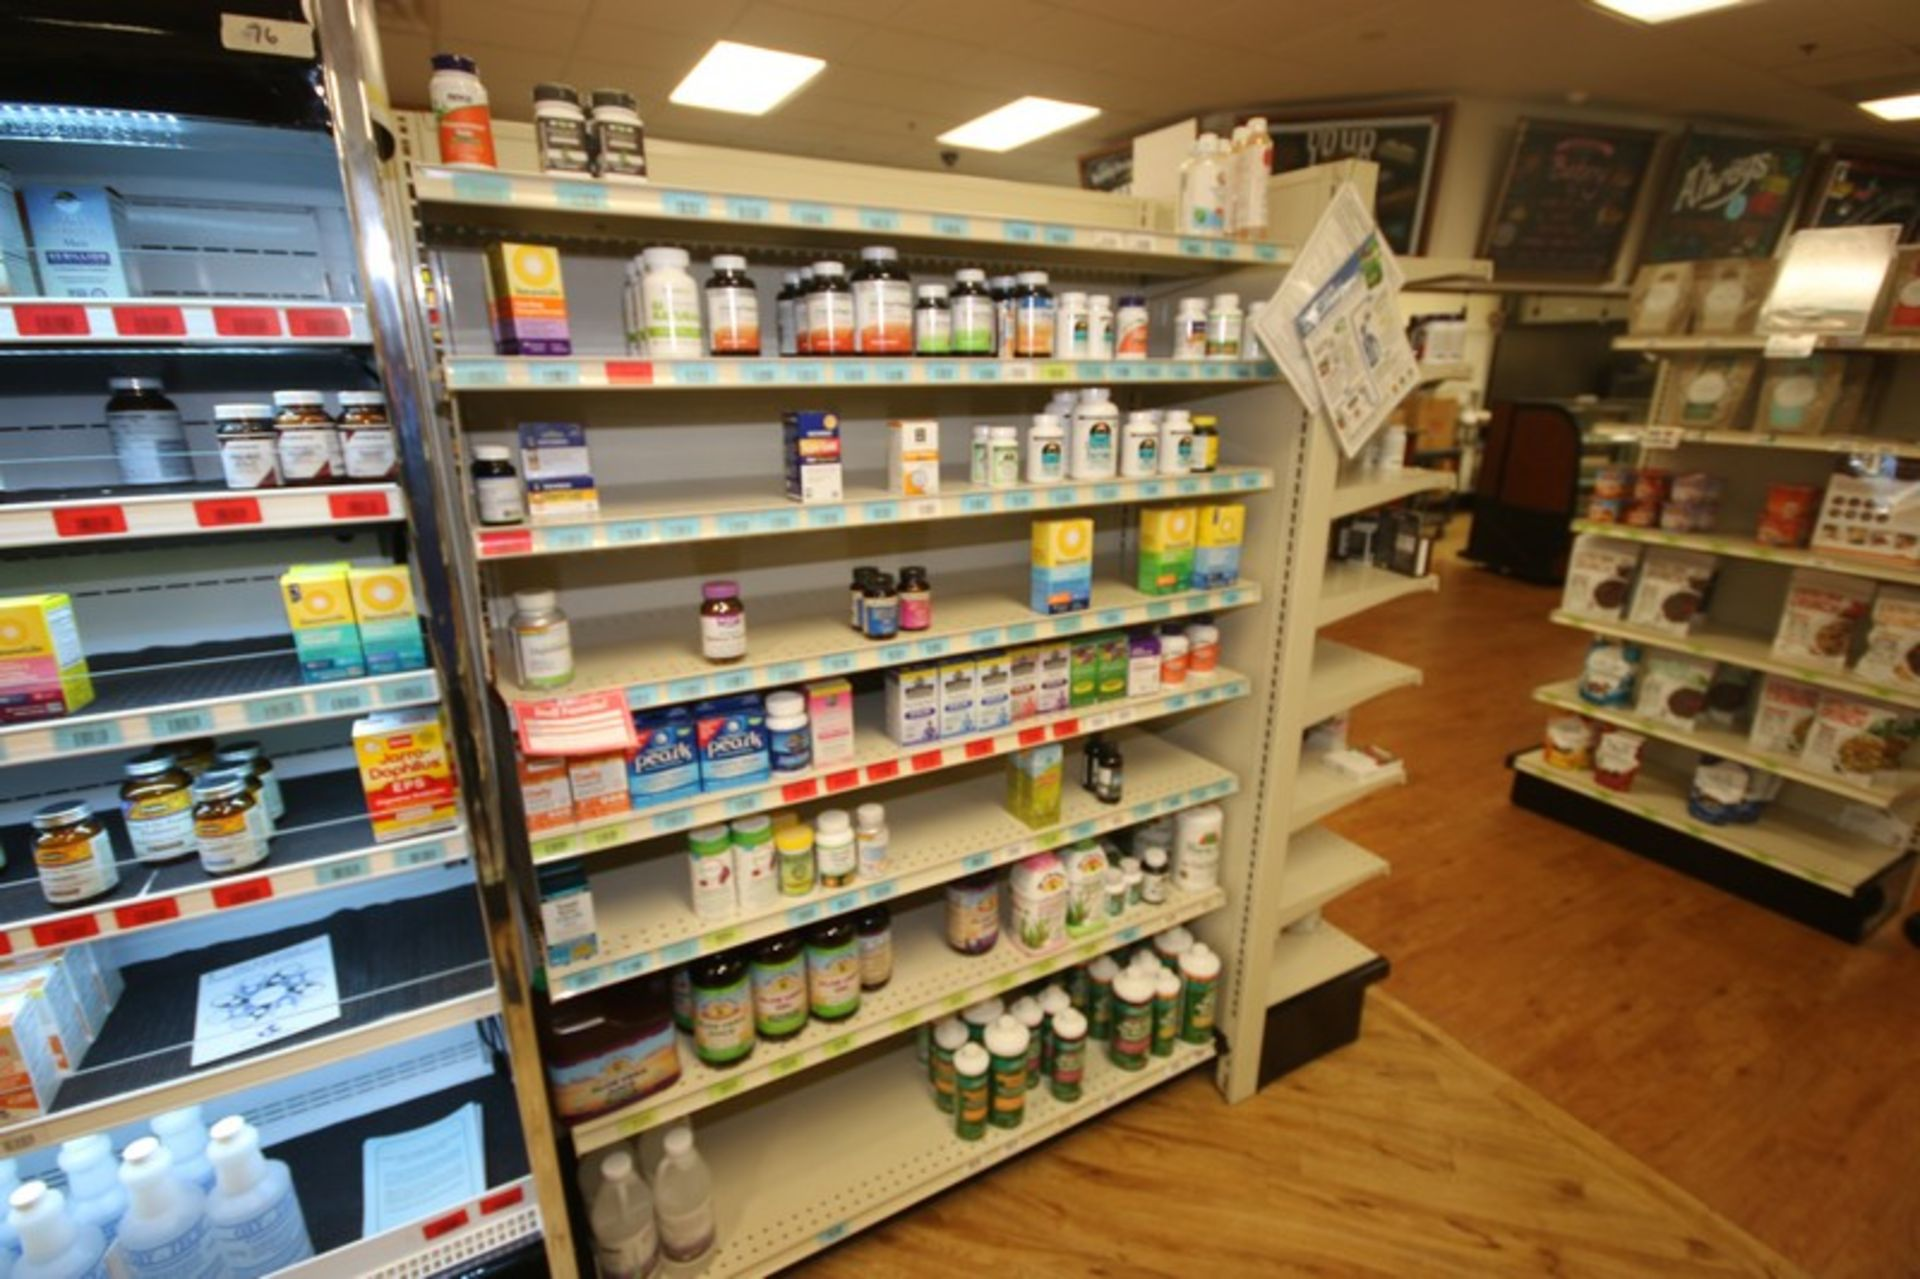 Feet of Double Sided Super Market Shelving, with Shelves, with 1-End Shelf (NOTE: SOLD BY THE - Image 3 of 3